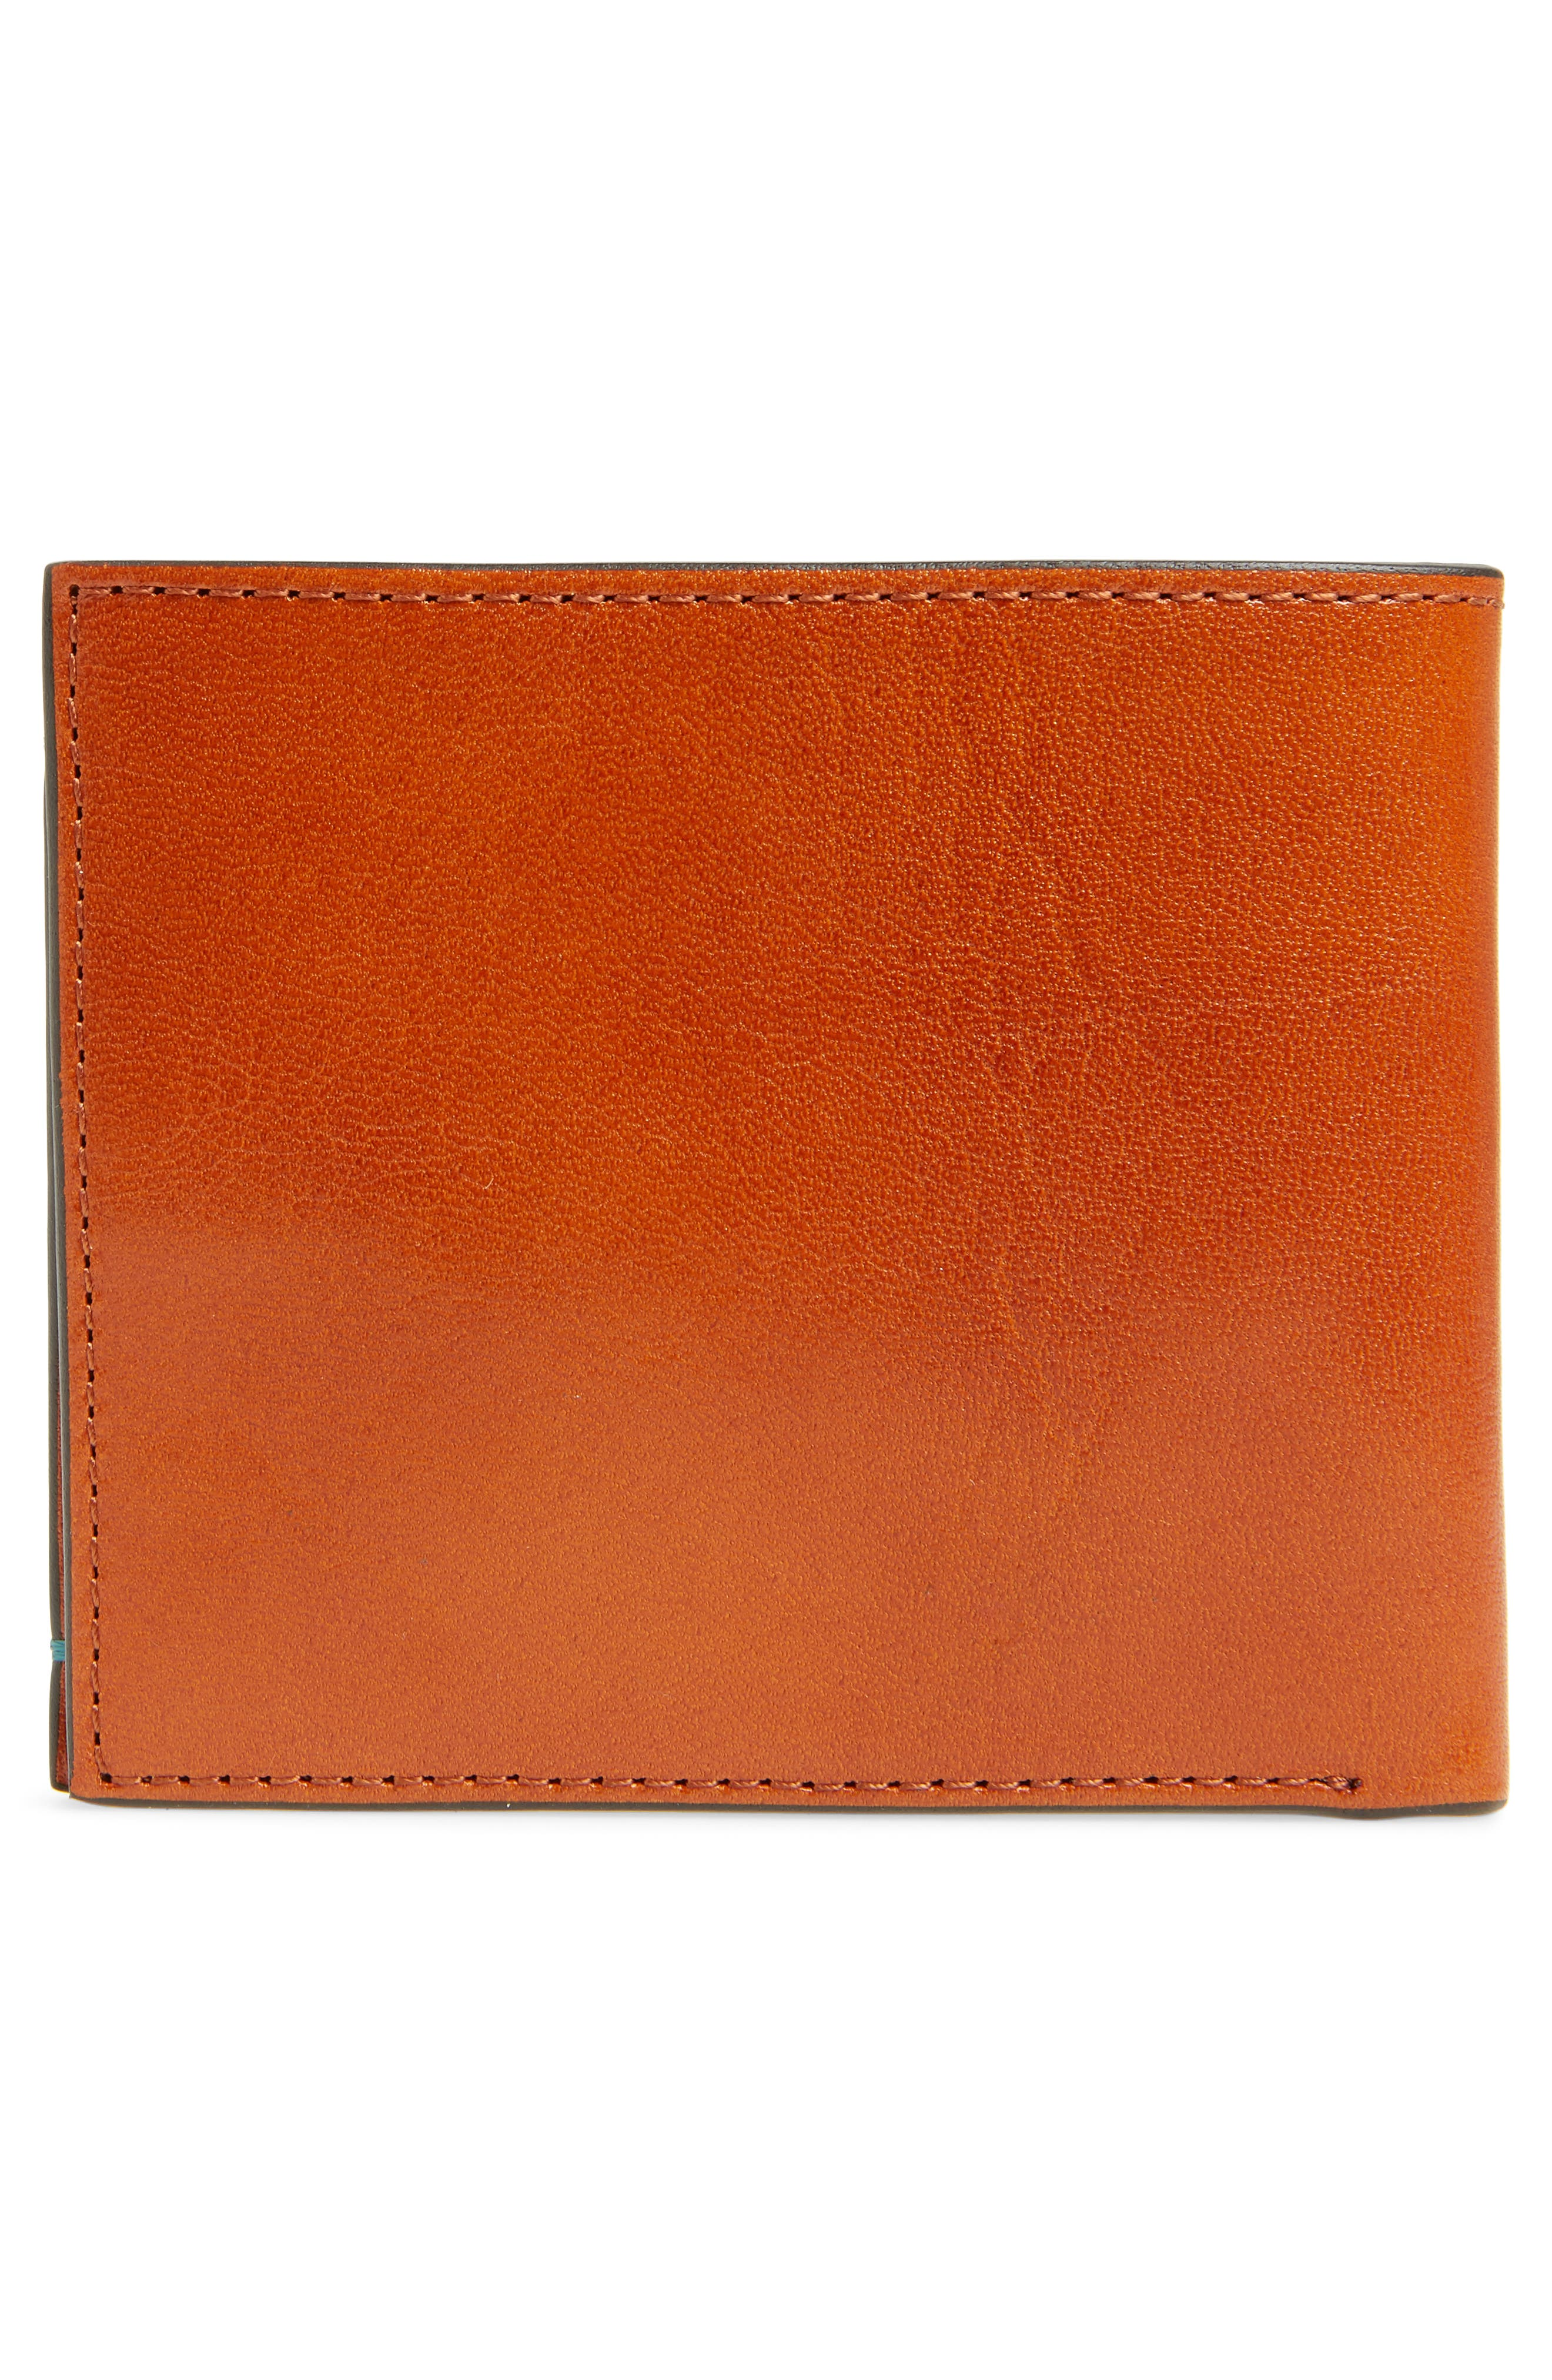 Logans Leather Wallet,                             Alternate thumbnail 3, color,                             TAN